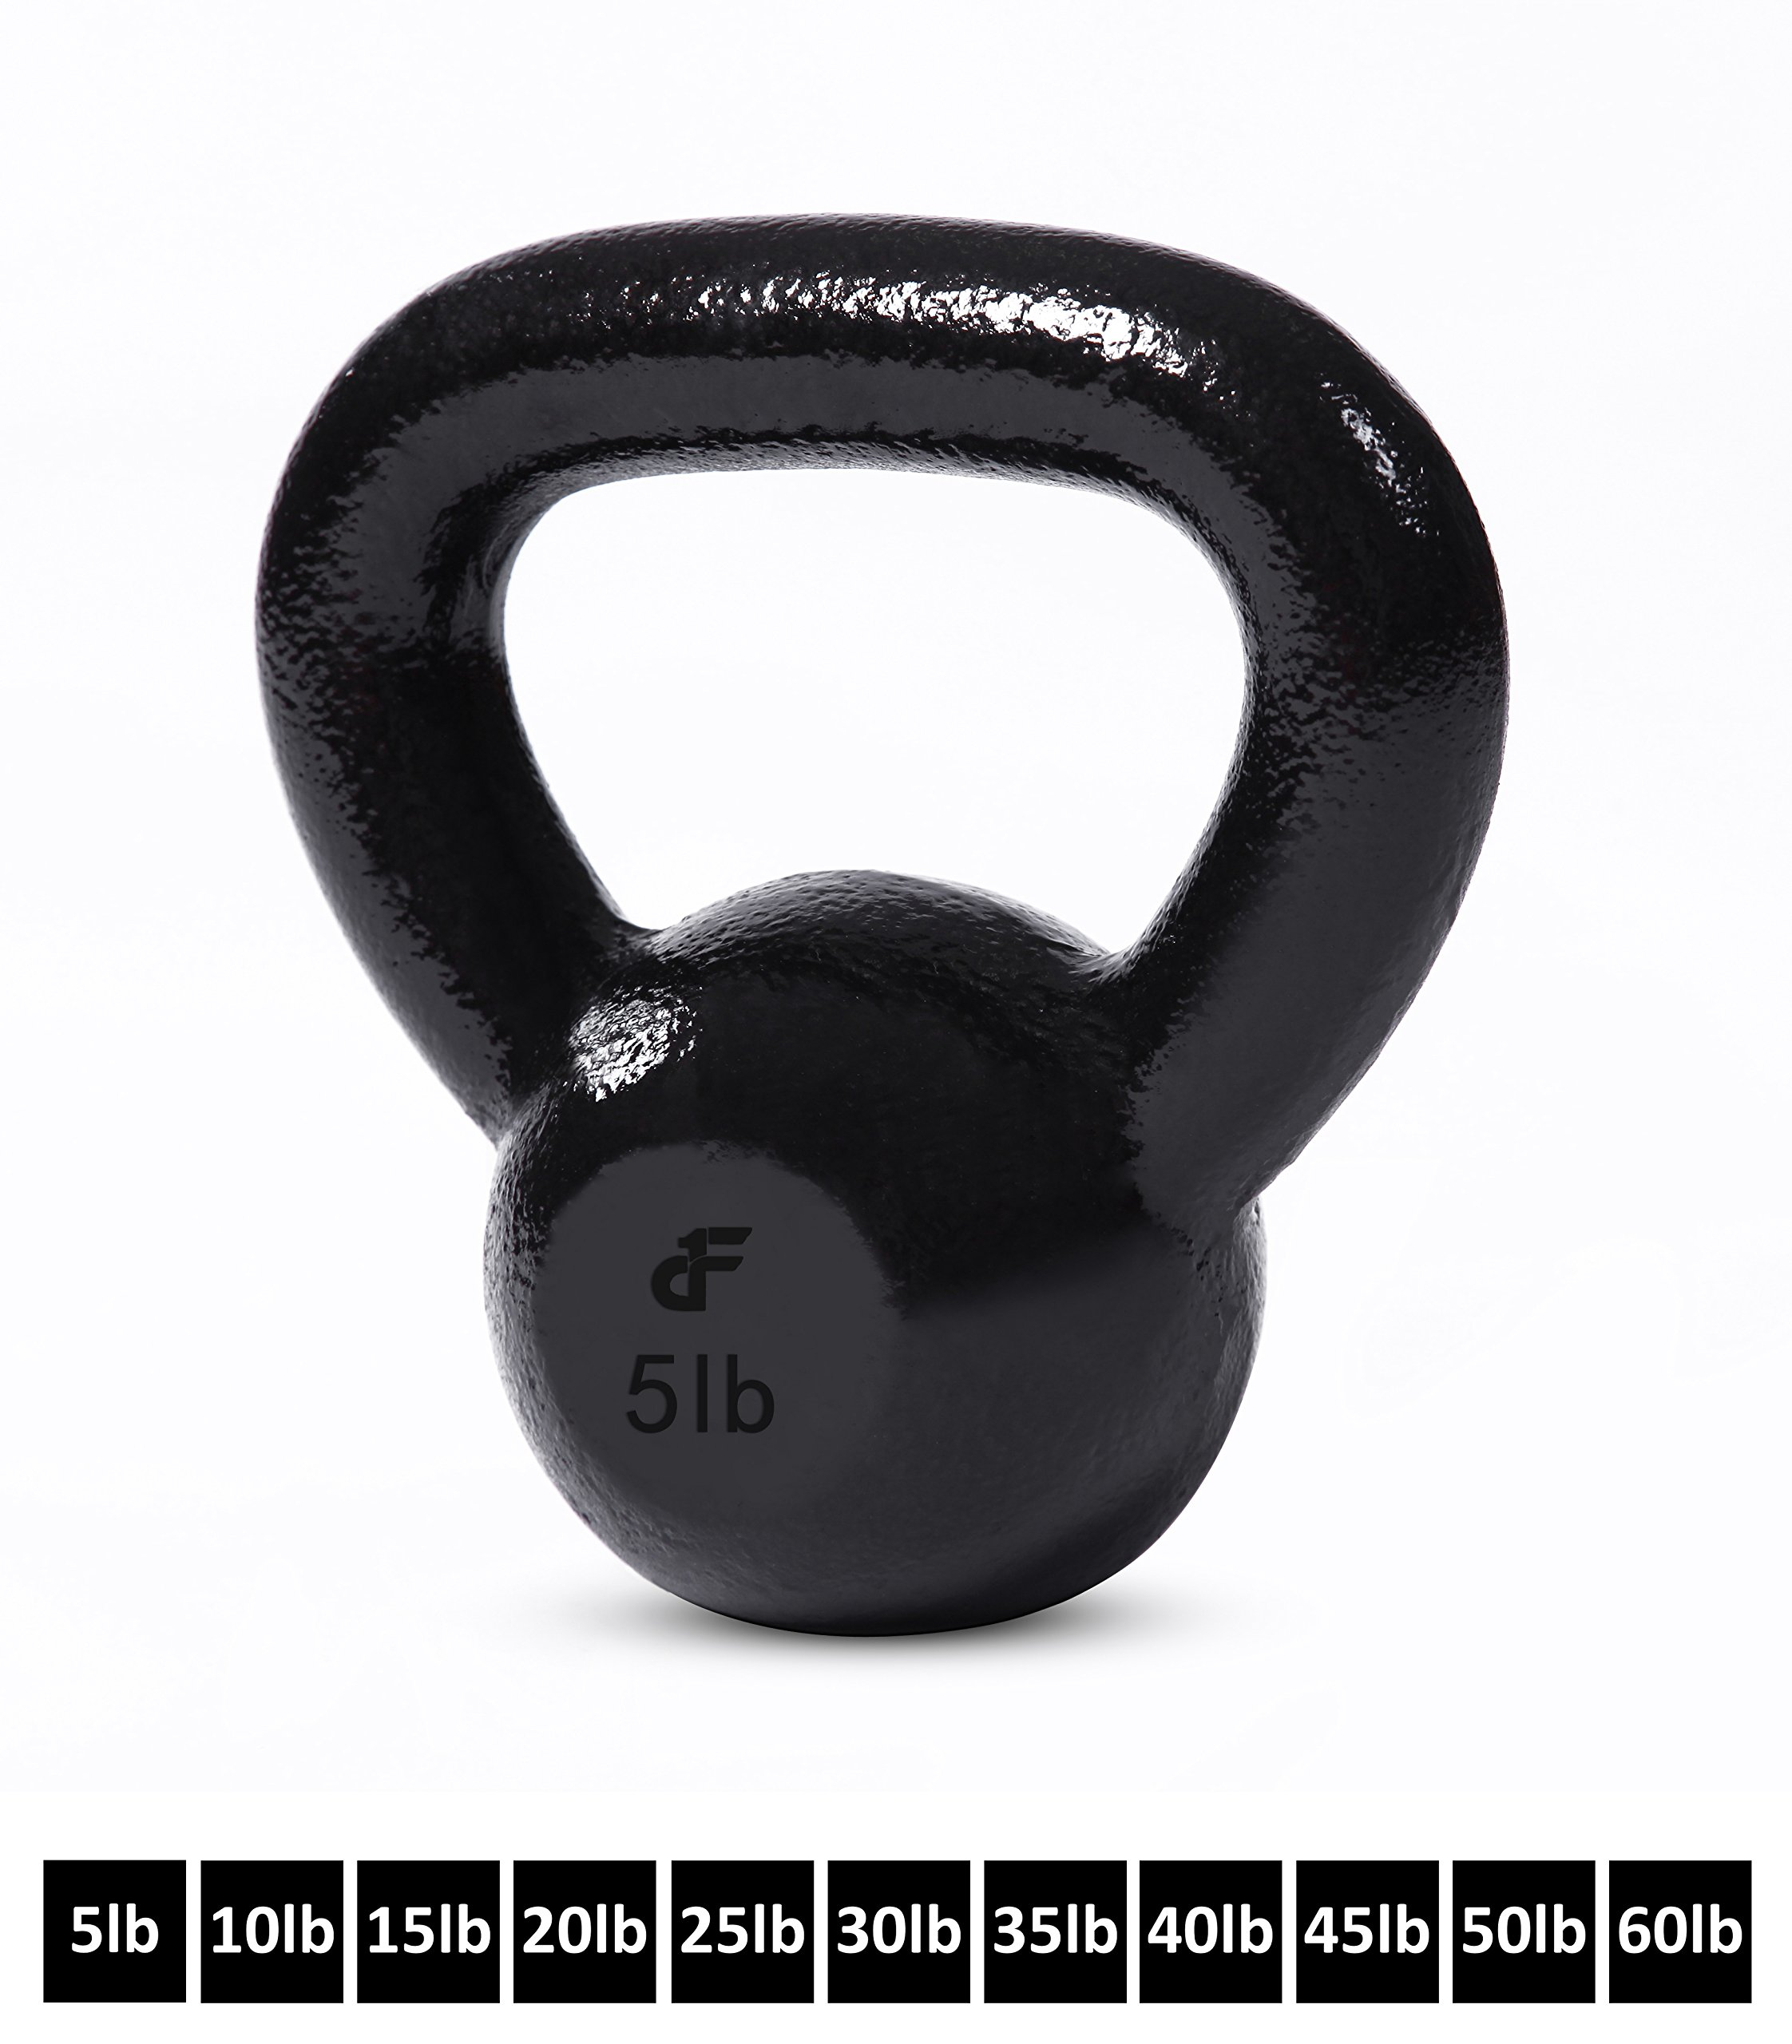 Kettlebell Weights Cast Iron by Day 1 Fitness – 5 Pounds - Ballistic Exercise, Core Strength, Functional Fitness, and Weight Training Set - Free Weight, Equipment, Accessories